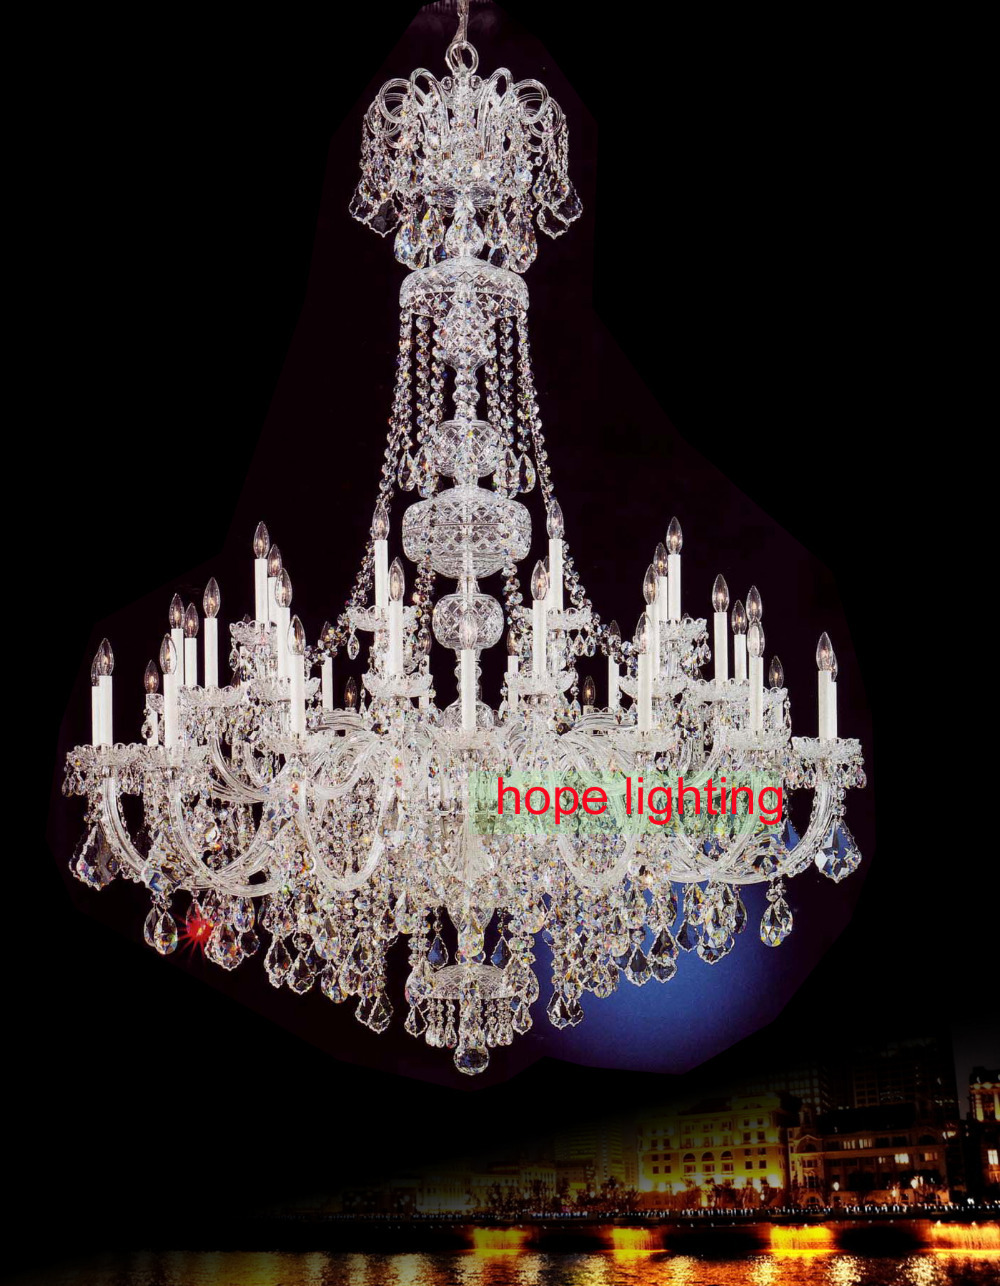 Large Chandelier Crystals Empire Crystal Lighting Bohemian Chandeliers For Hotel Lobby K9 Lamp In From Lights